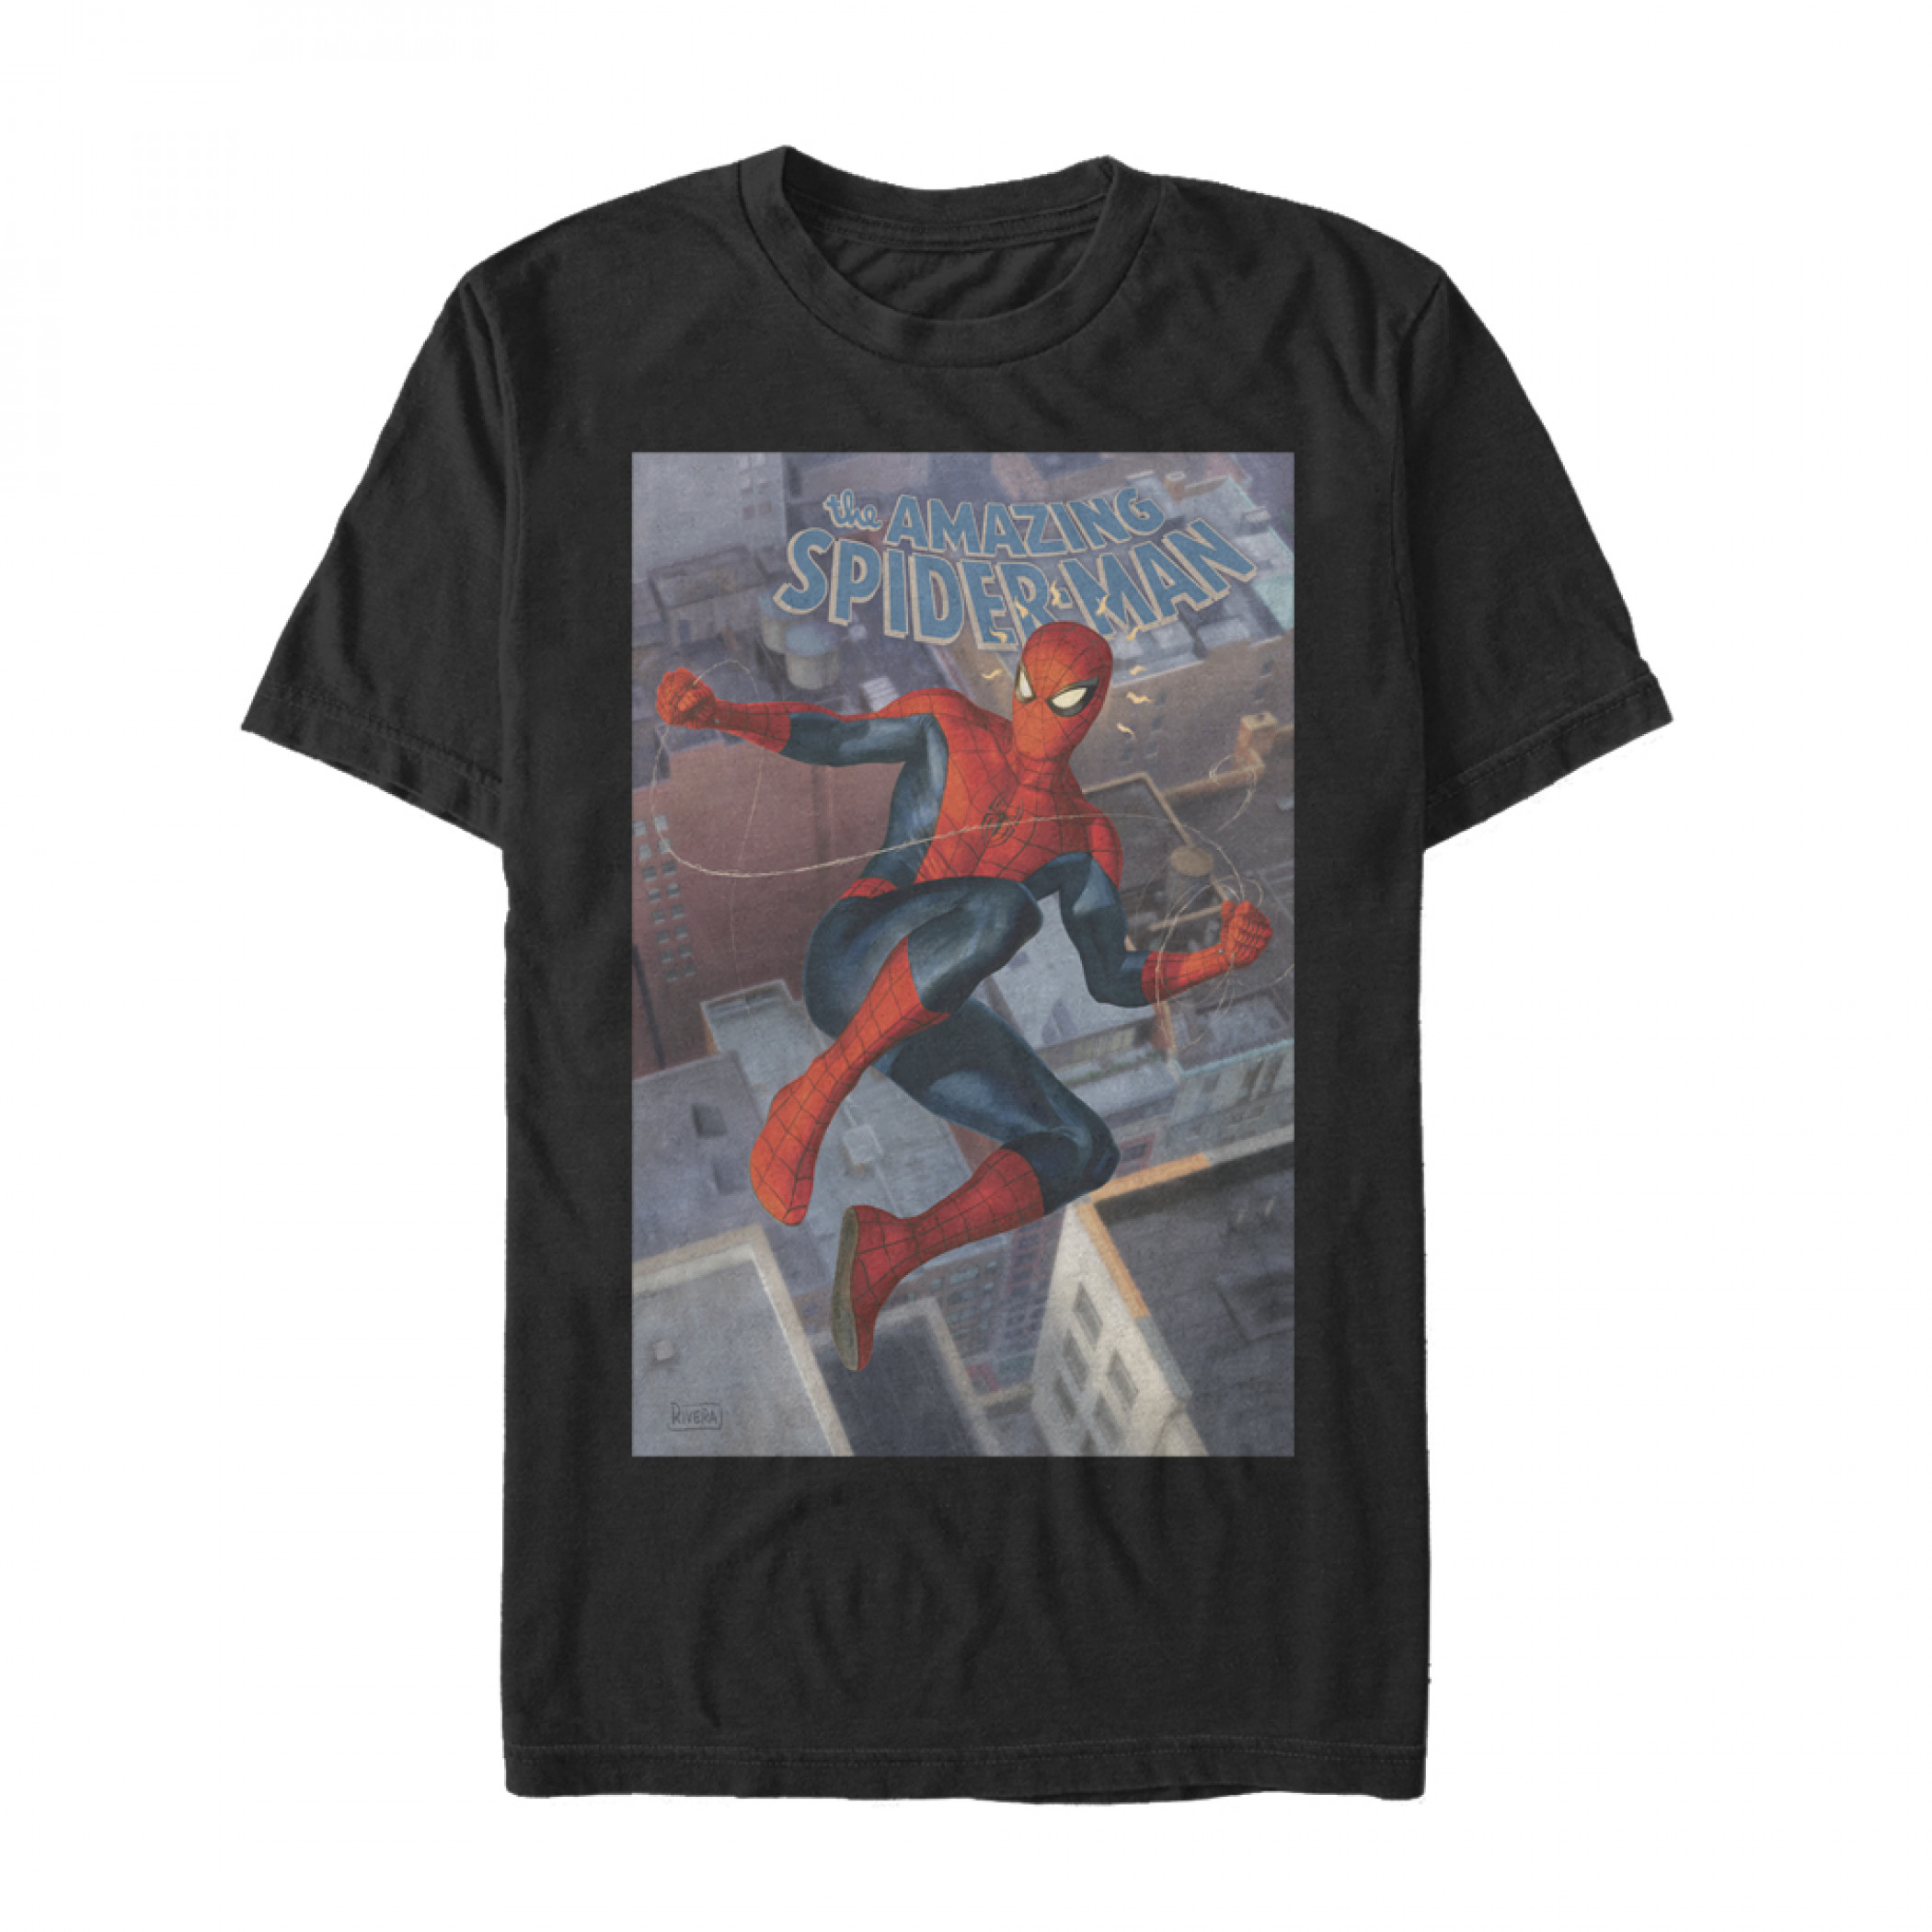 The Amazing Spider-Man #15 Comic Cover T-Shirt